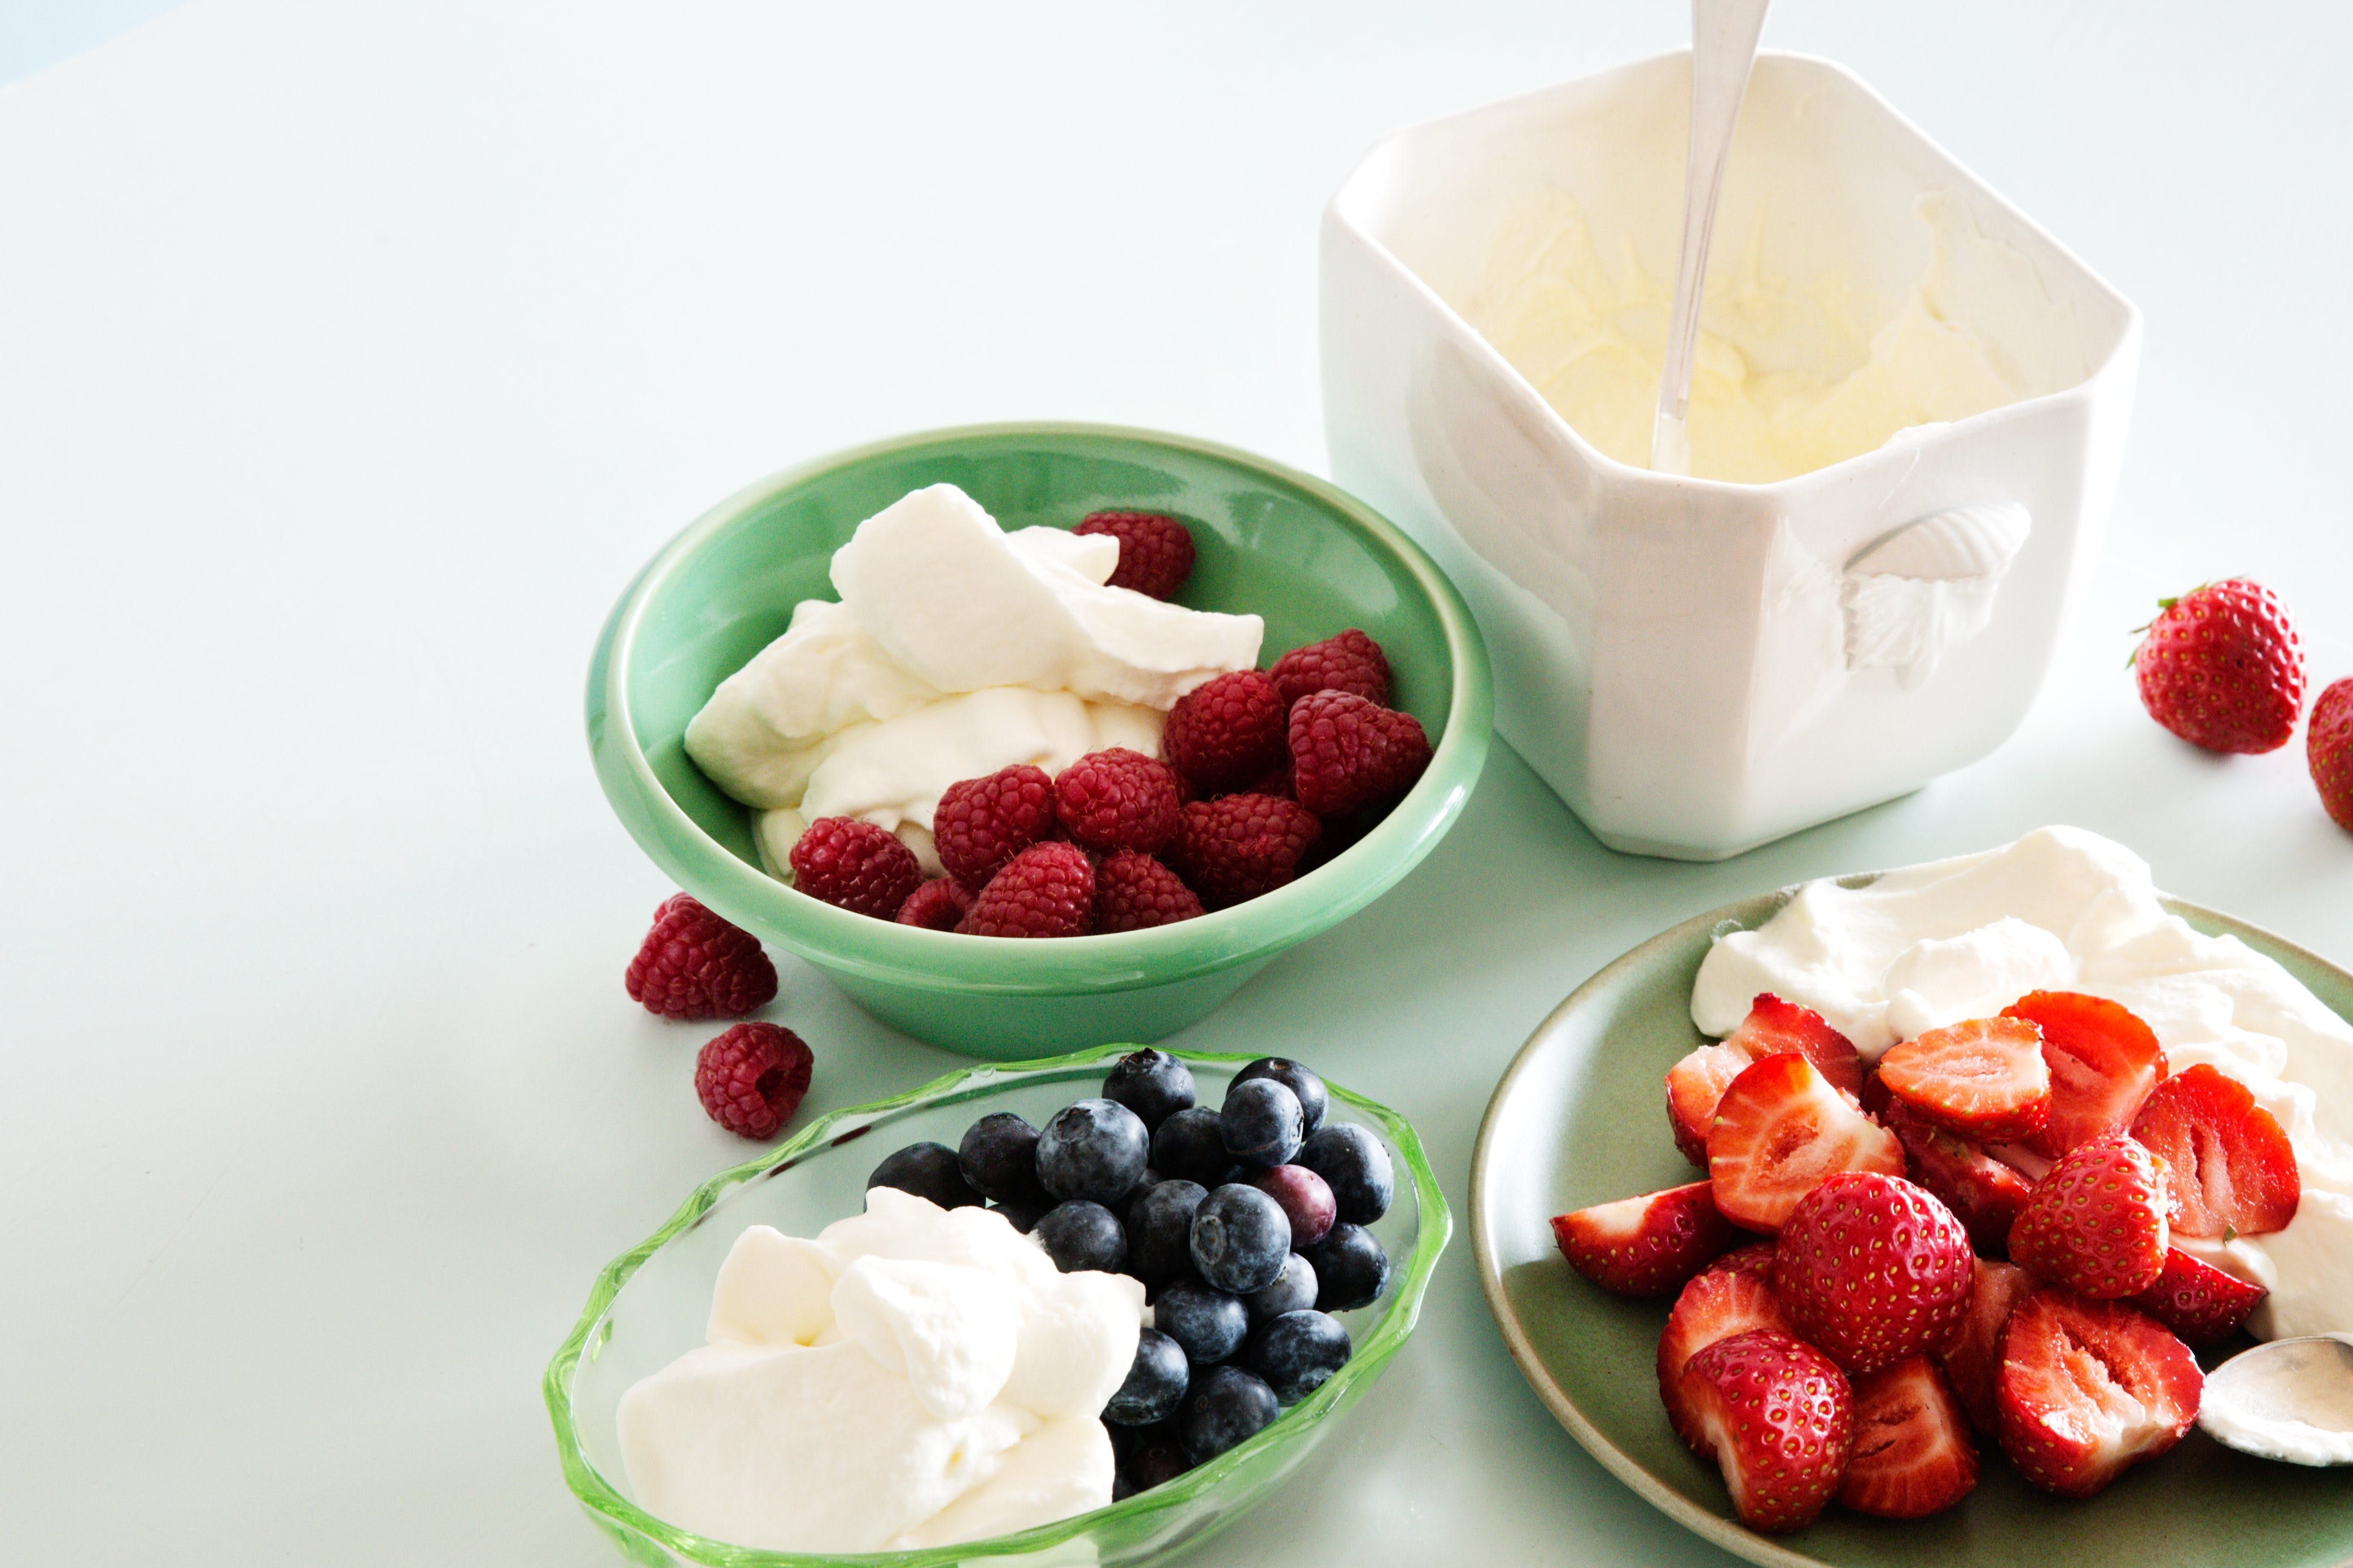 Berries and Whipped Cream – The Ultimate Low-Carb Treat